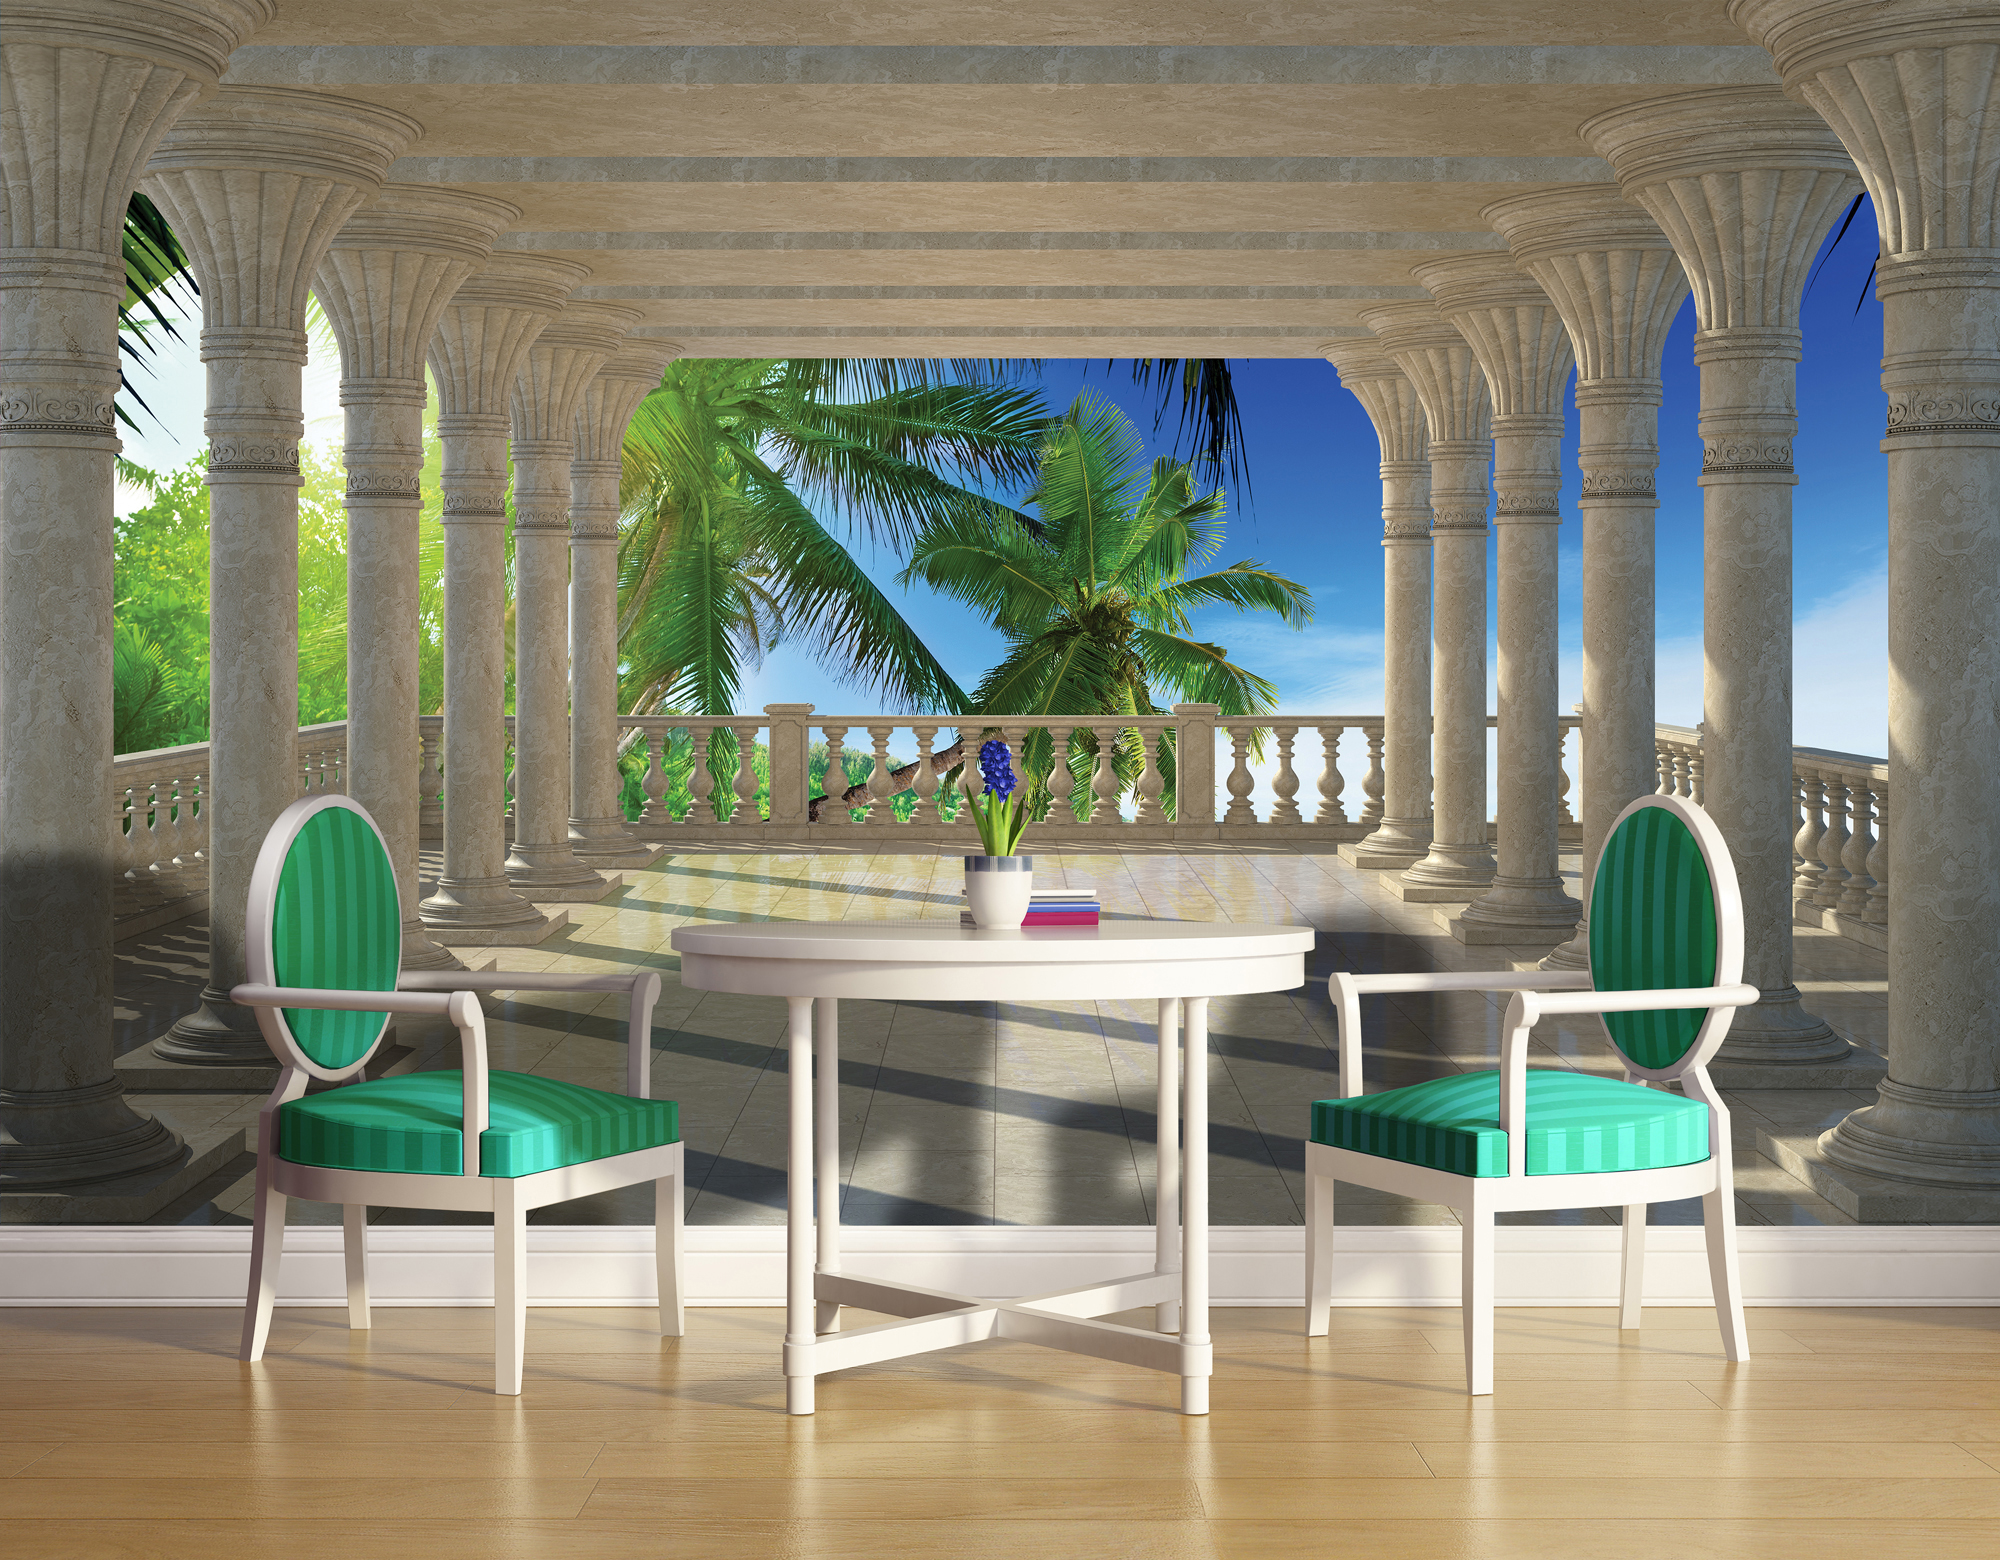 Vintage 3d blue luxury room, with table, chairs wood floor